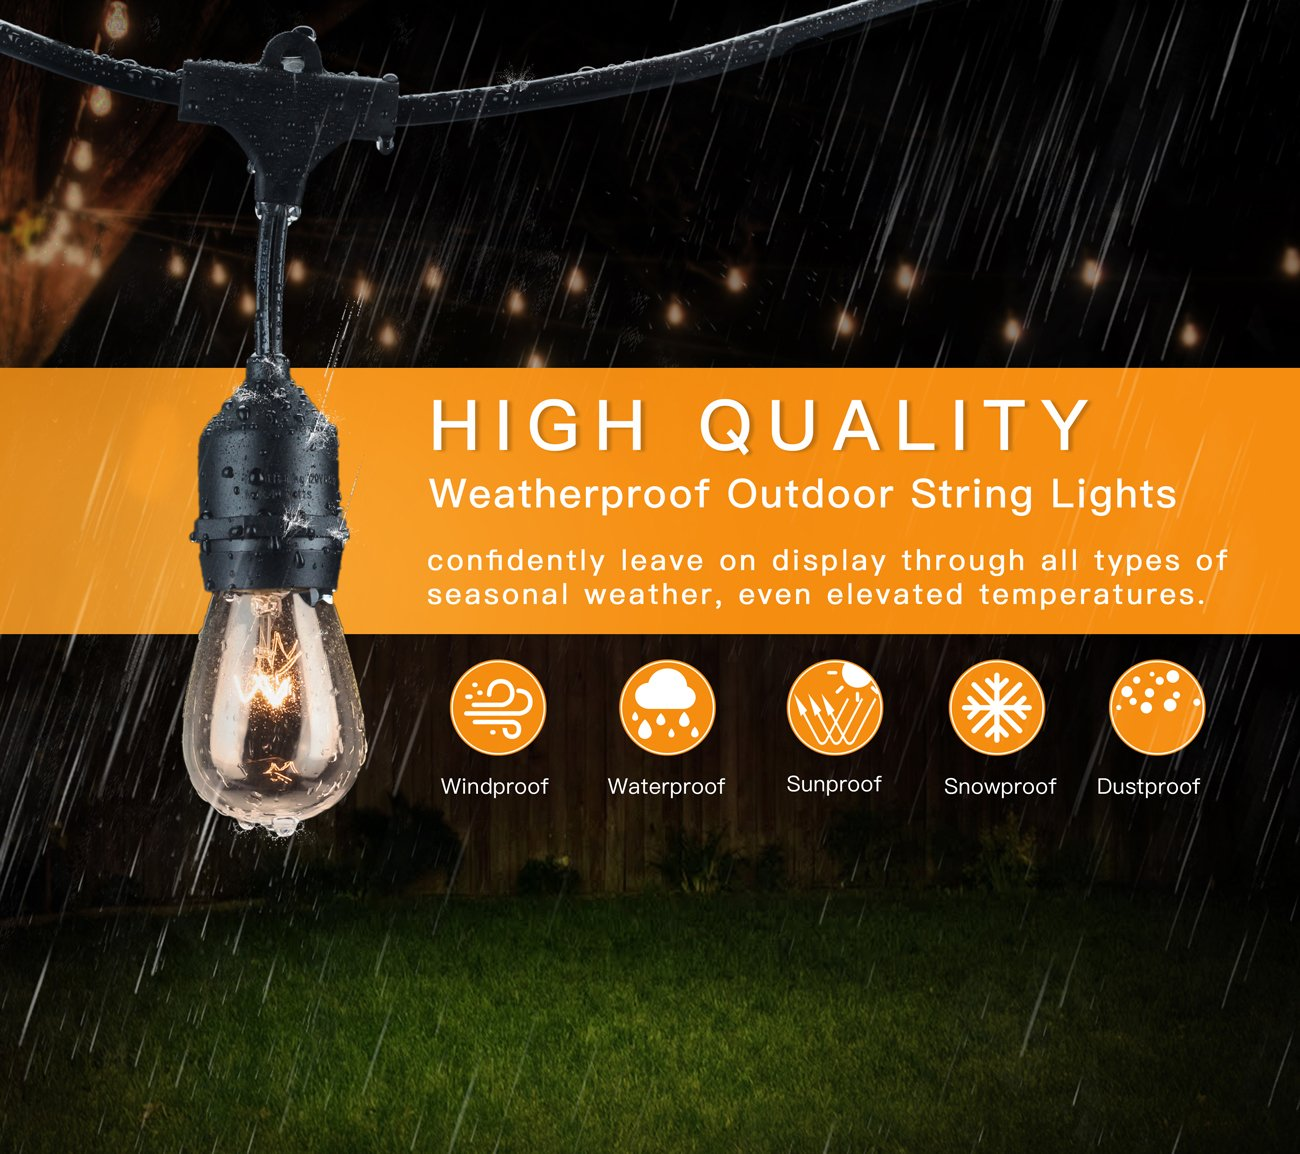 2-Pack 48Ft Heavy Duty Outdoor Patio String lights, Edison Vintage Dimmable 11S14 Bulbs w/ Hanging Sockets, Commercial Grade Weatherproof Market Cafe Lights for Bistro Backyard Pergola Party, Blk by SHINE HAI (Image #3)